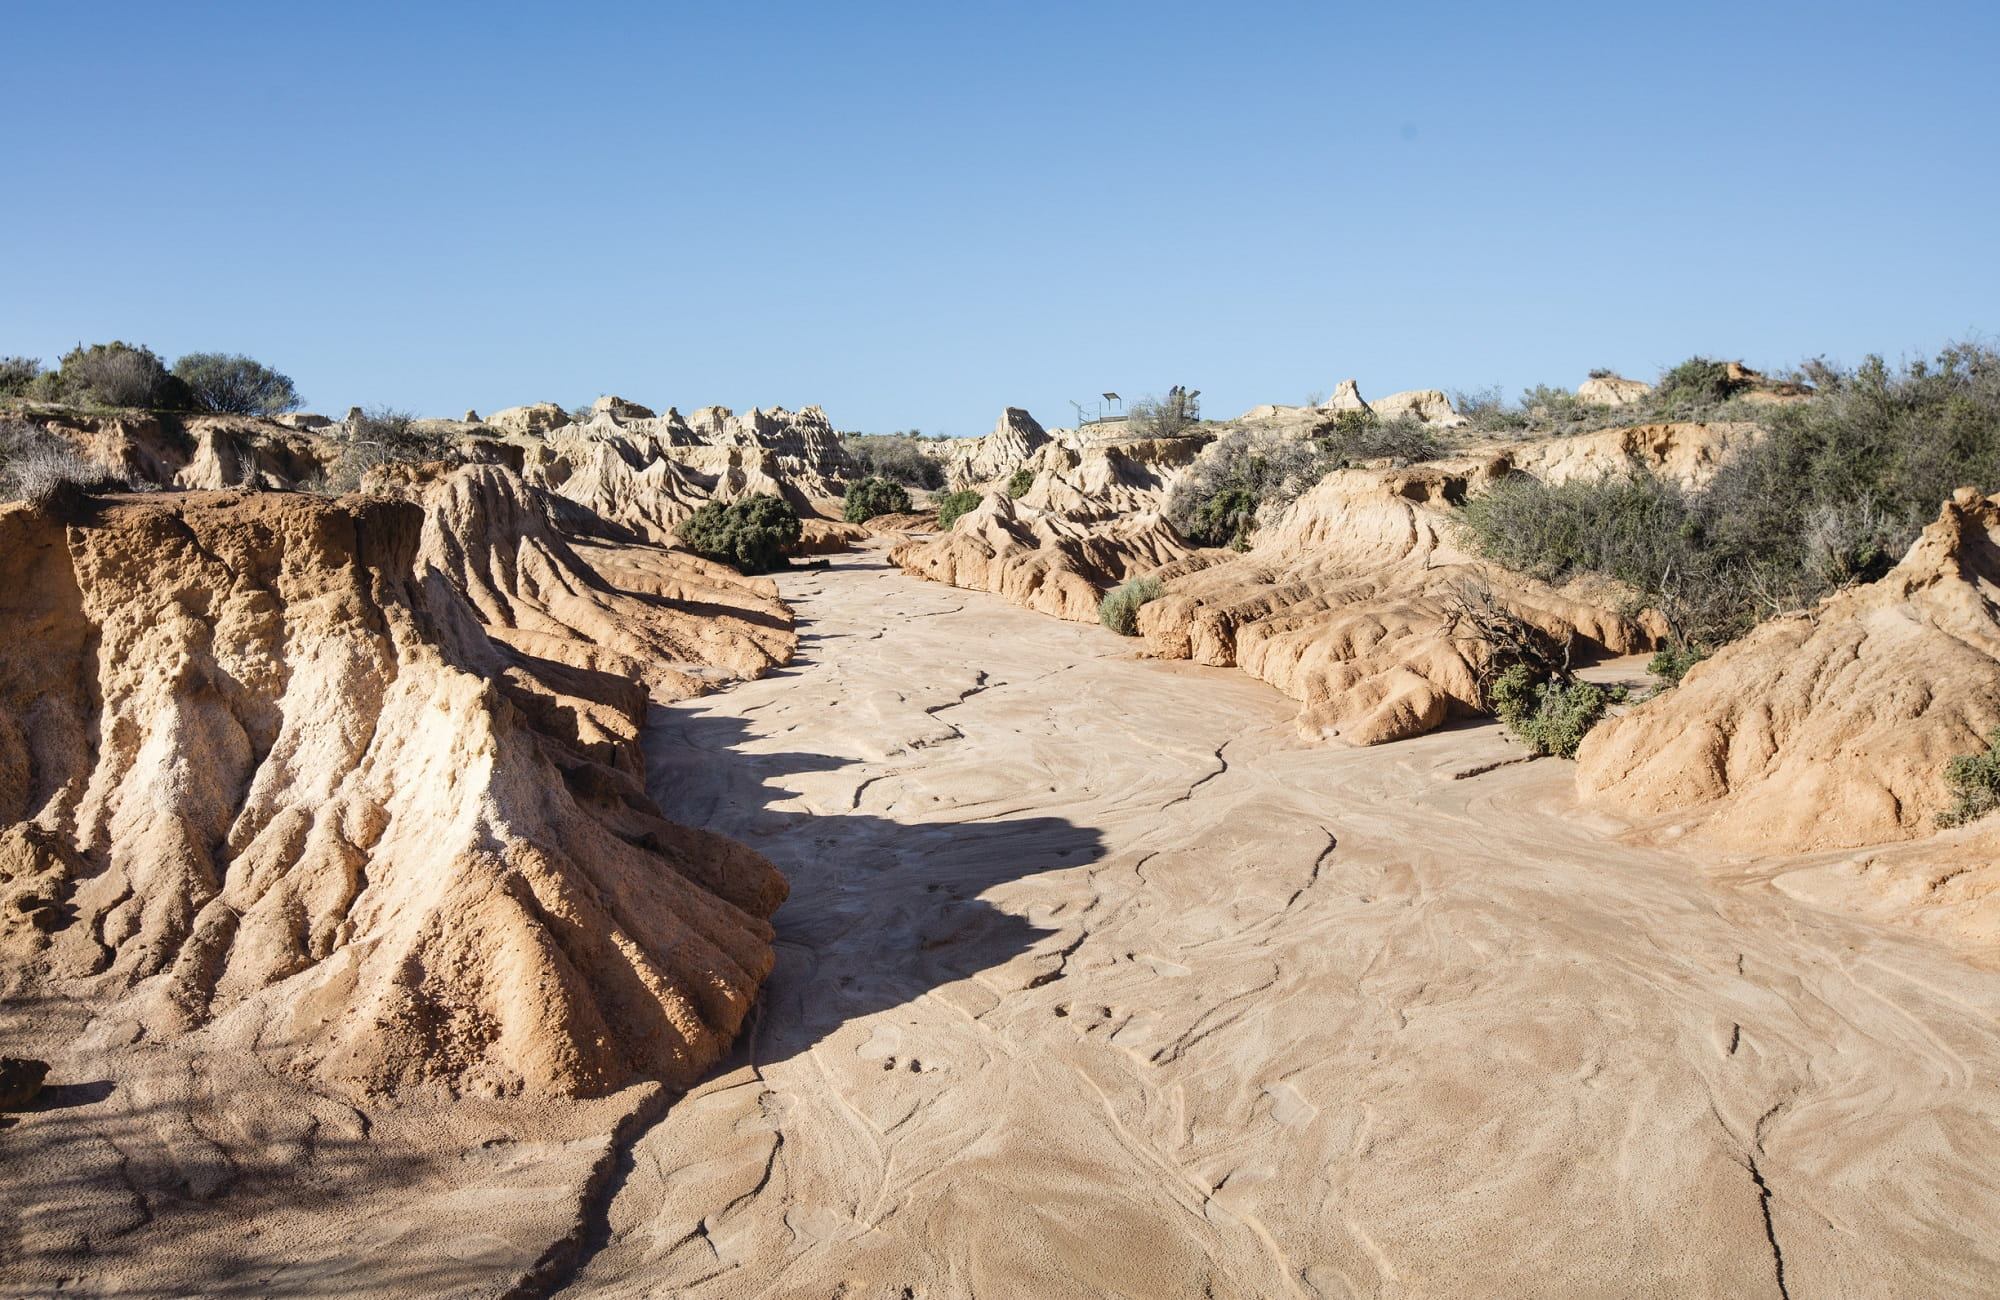 Sand and silt formations at Walls of China, Mungo National Park. Photo: Vision House Photography/OEH